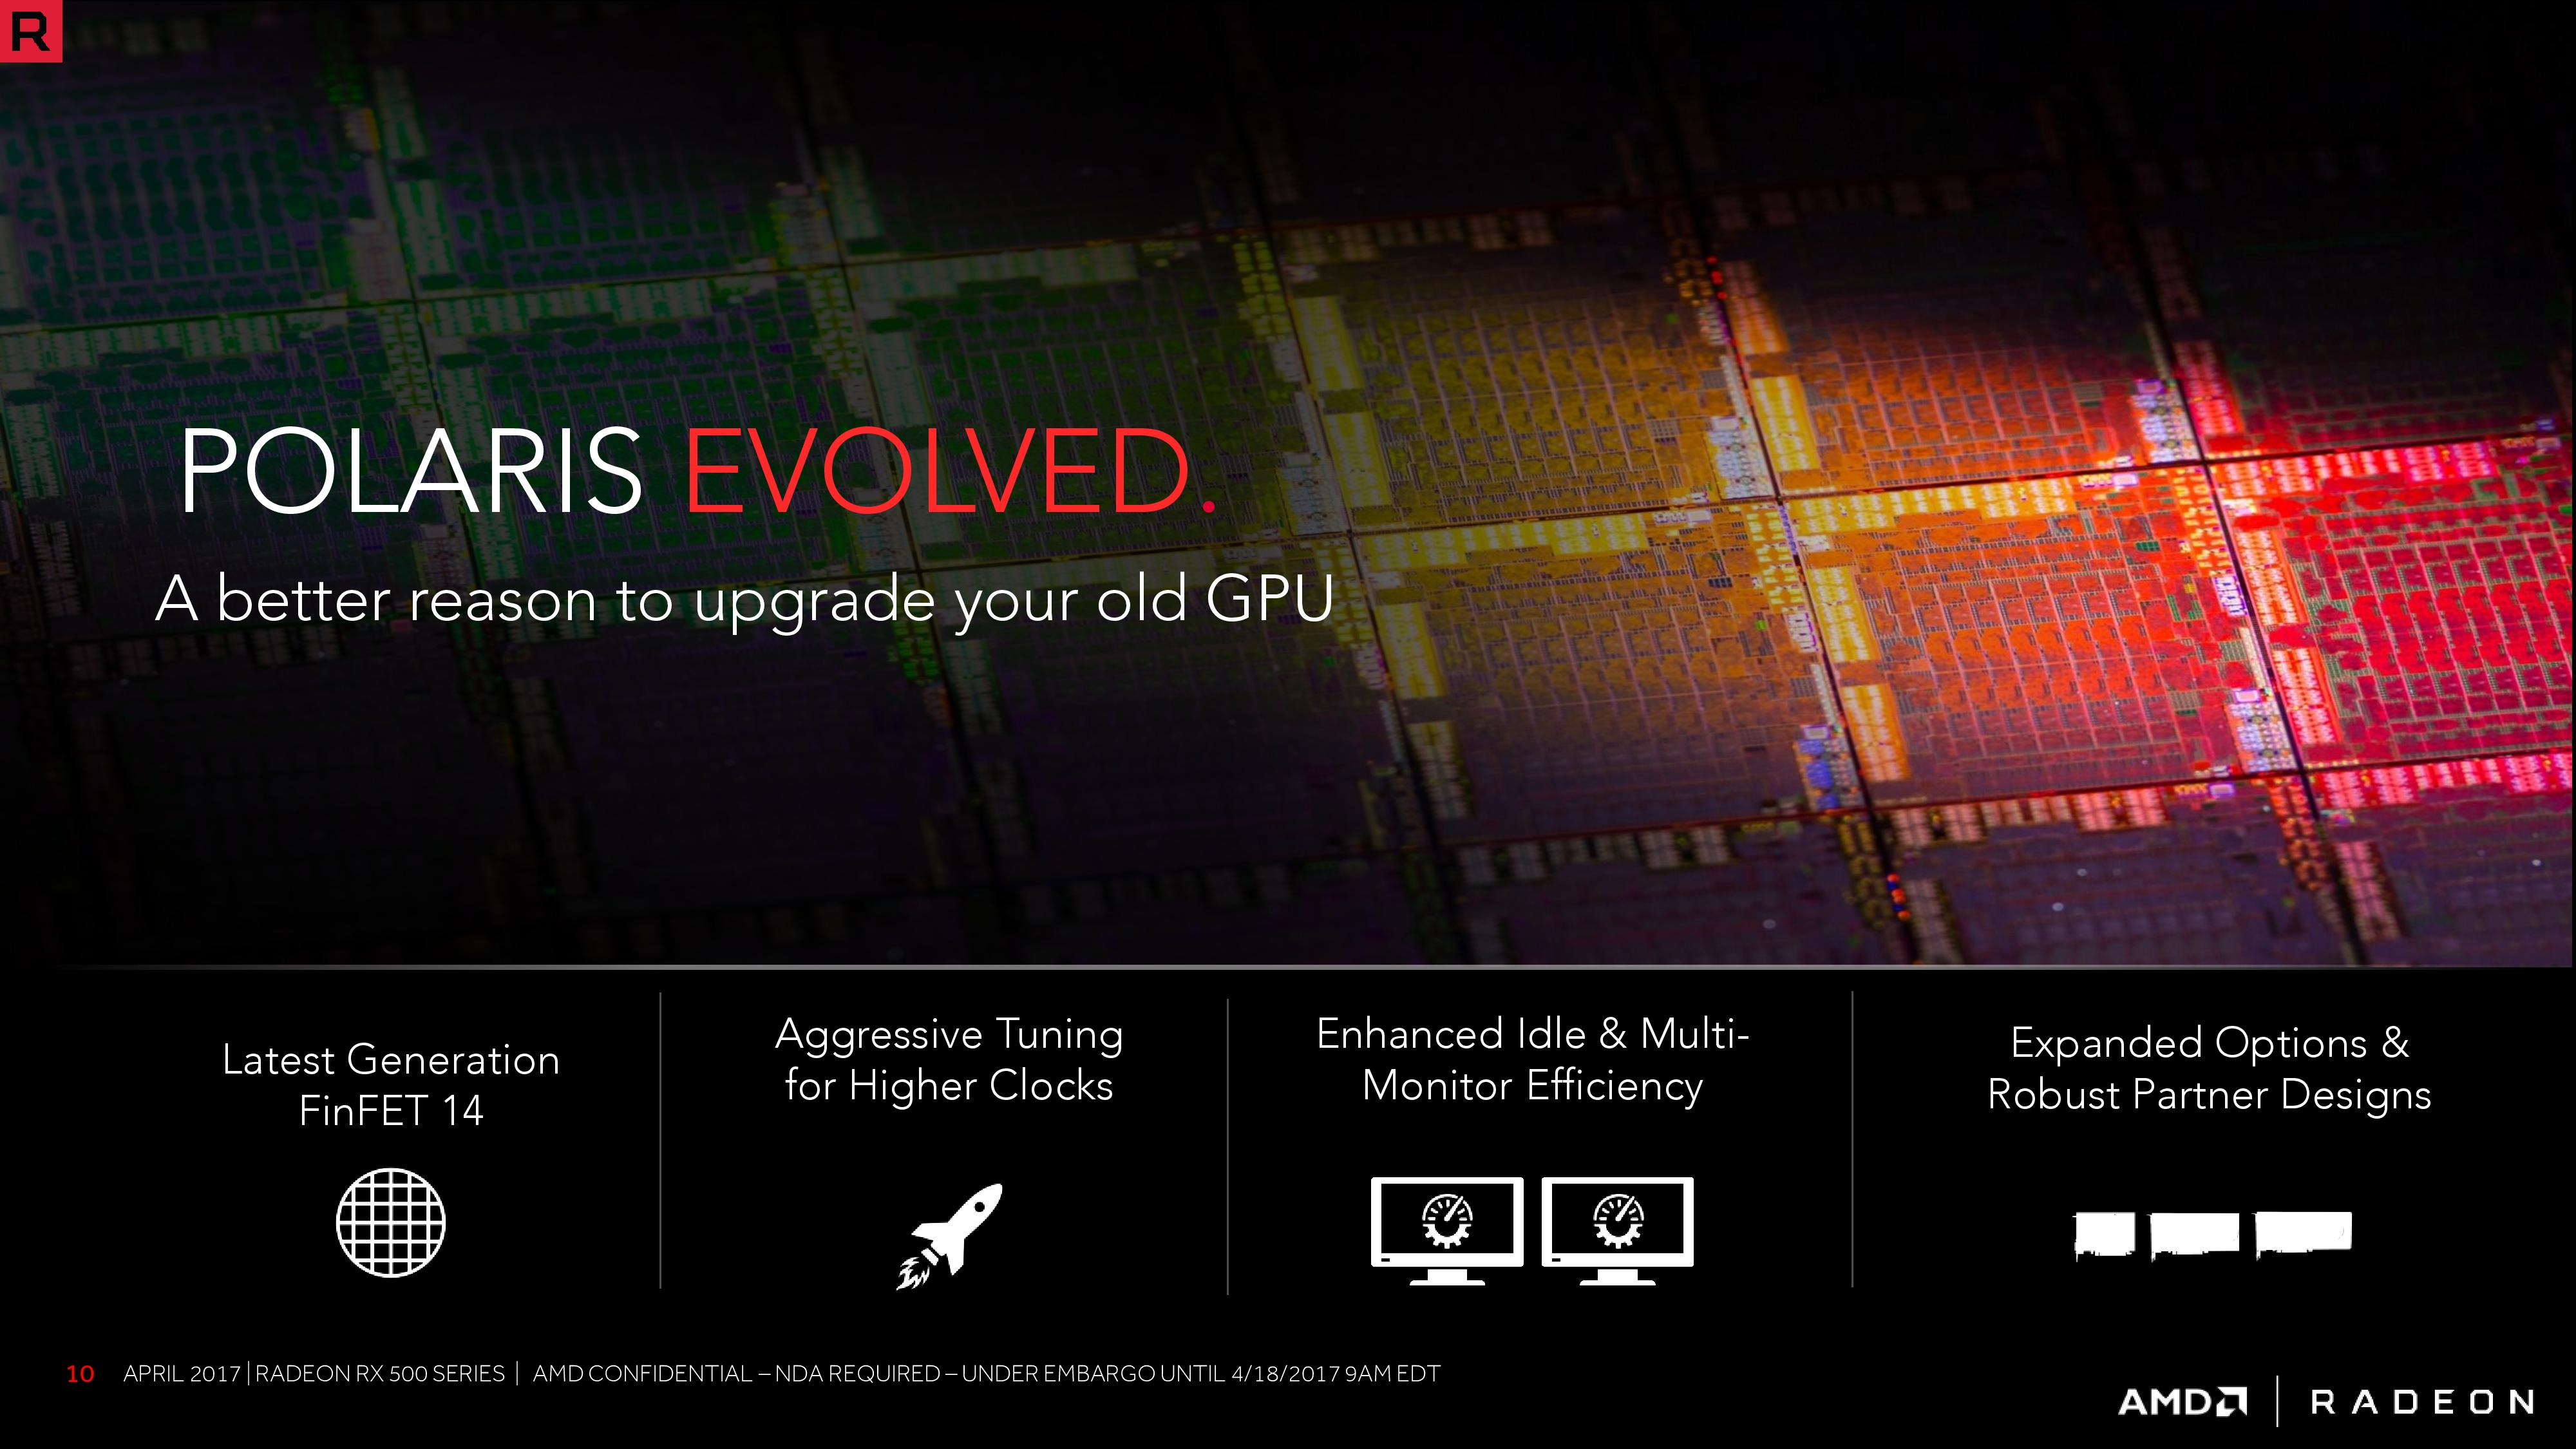 Polaris Refined: Better Fab Yields & a New Memory State - The AMD